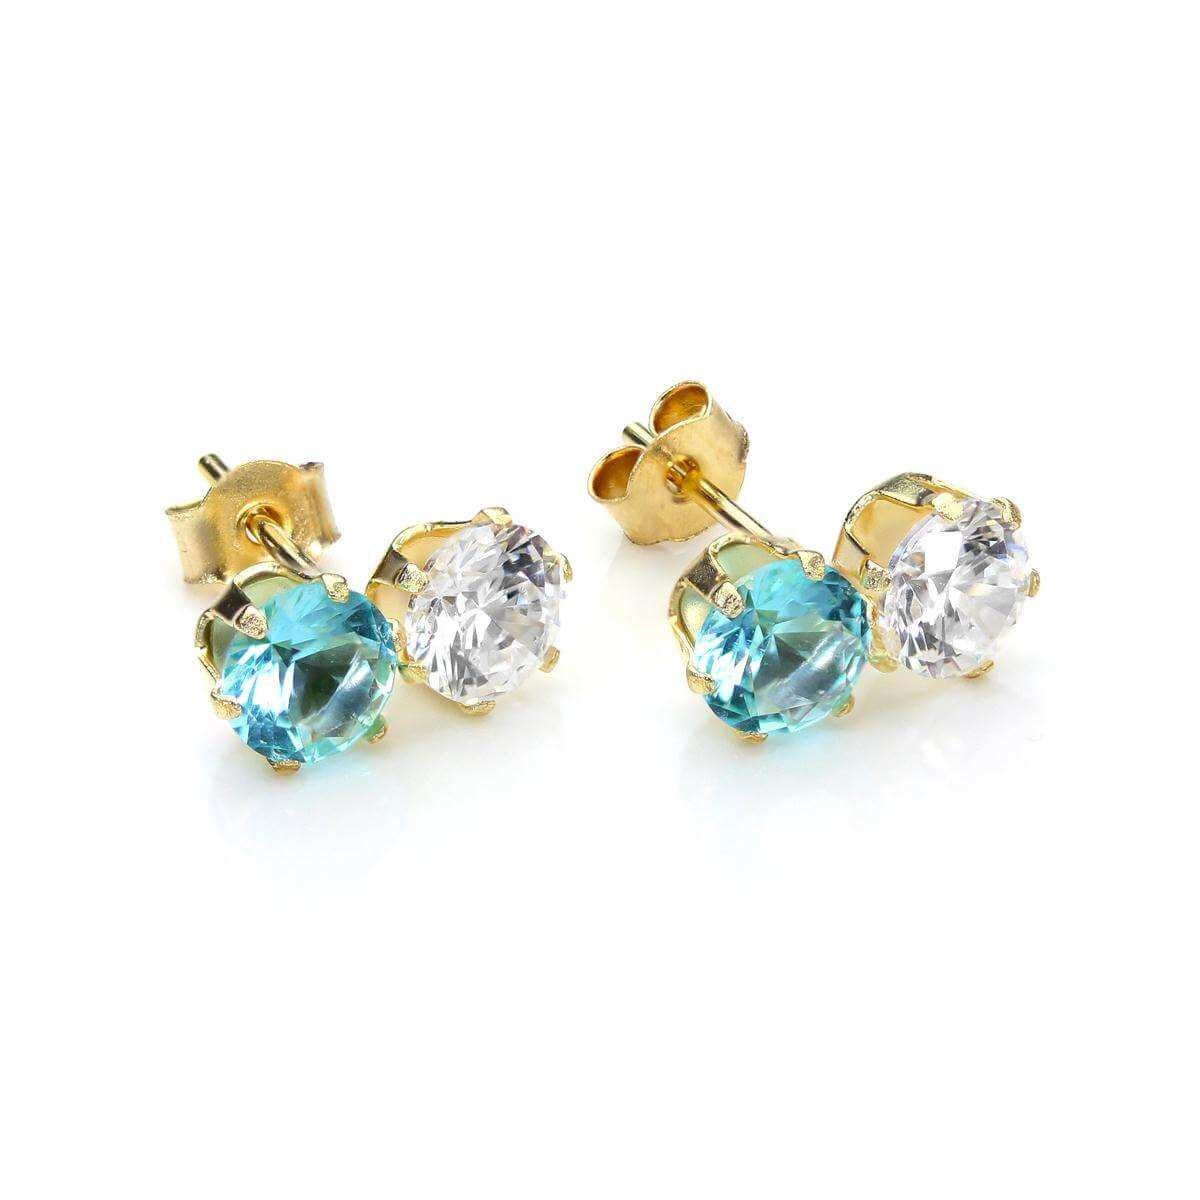 9ct Yellow Gold Aquamarine Crystal Double Stud Earrings